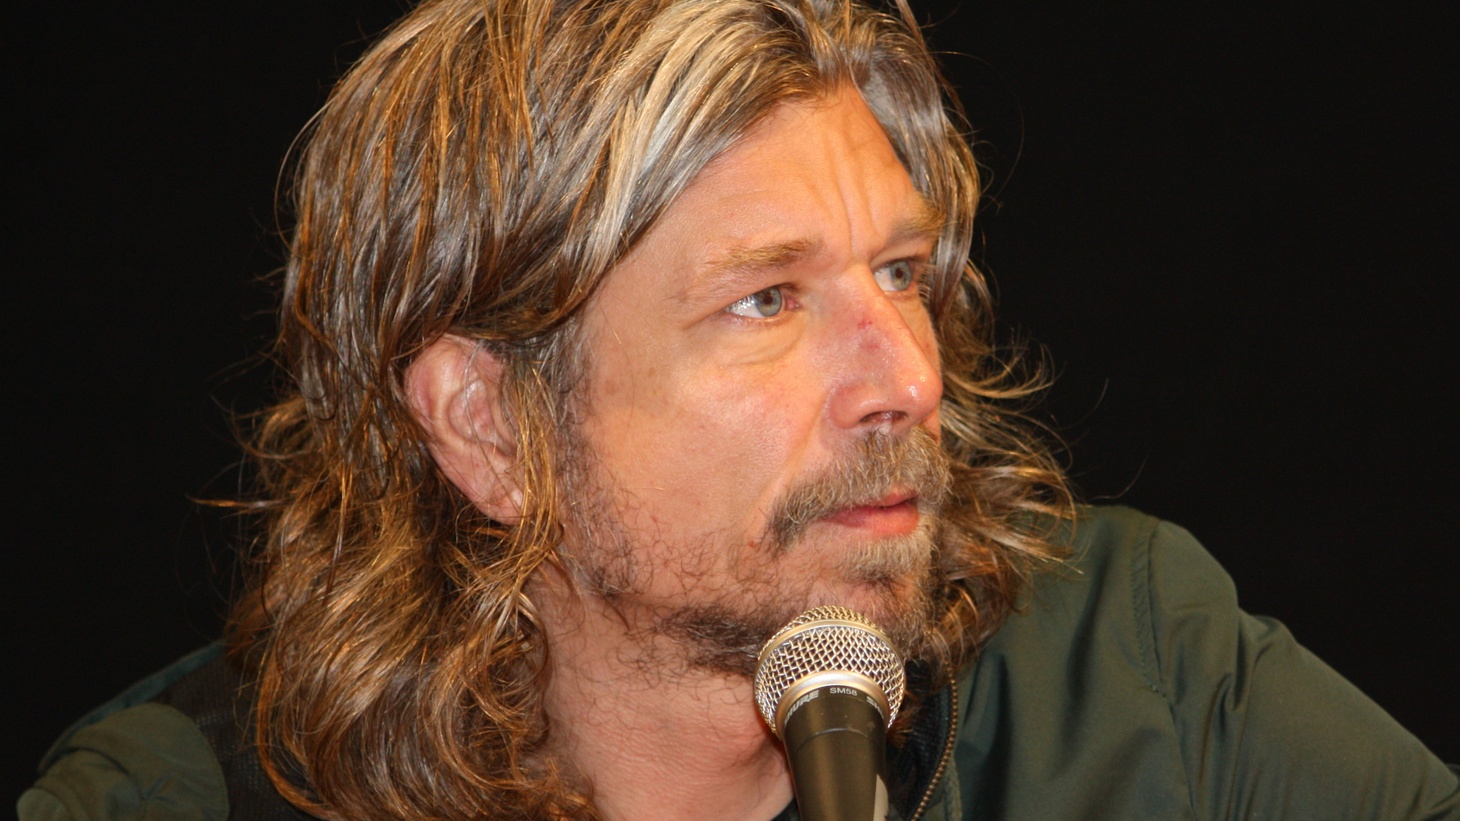 Reflecting on his autobiographical novels, Knausgaard says literature should be about life; in writing, he attempts to find meaning within the banality of the everyday.